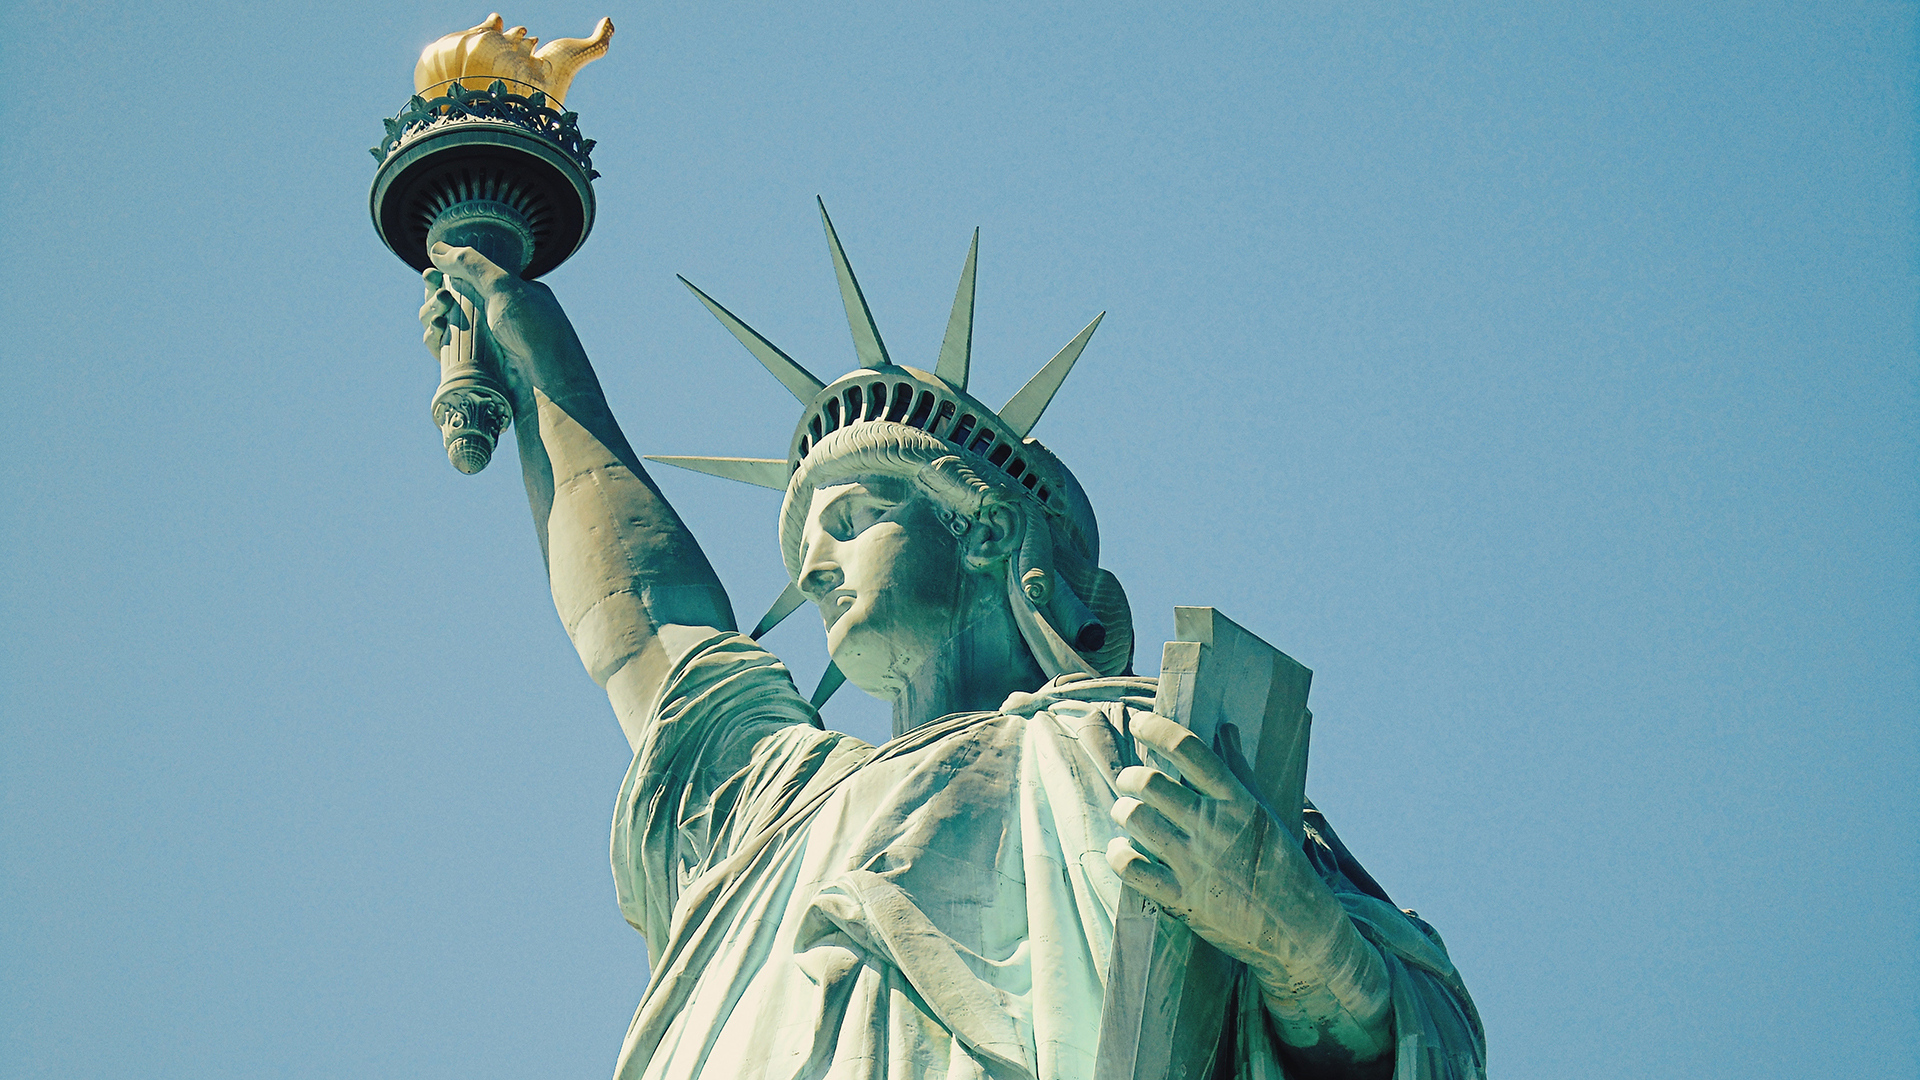 July 4, 1884: The Statue of Liberty Was Presented to the United States